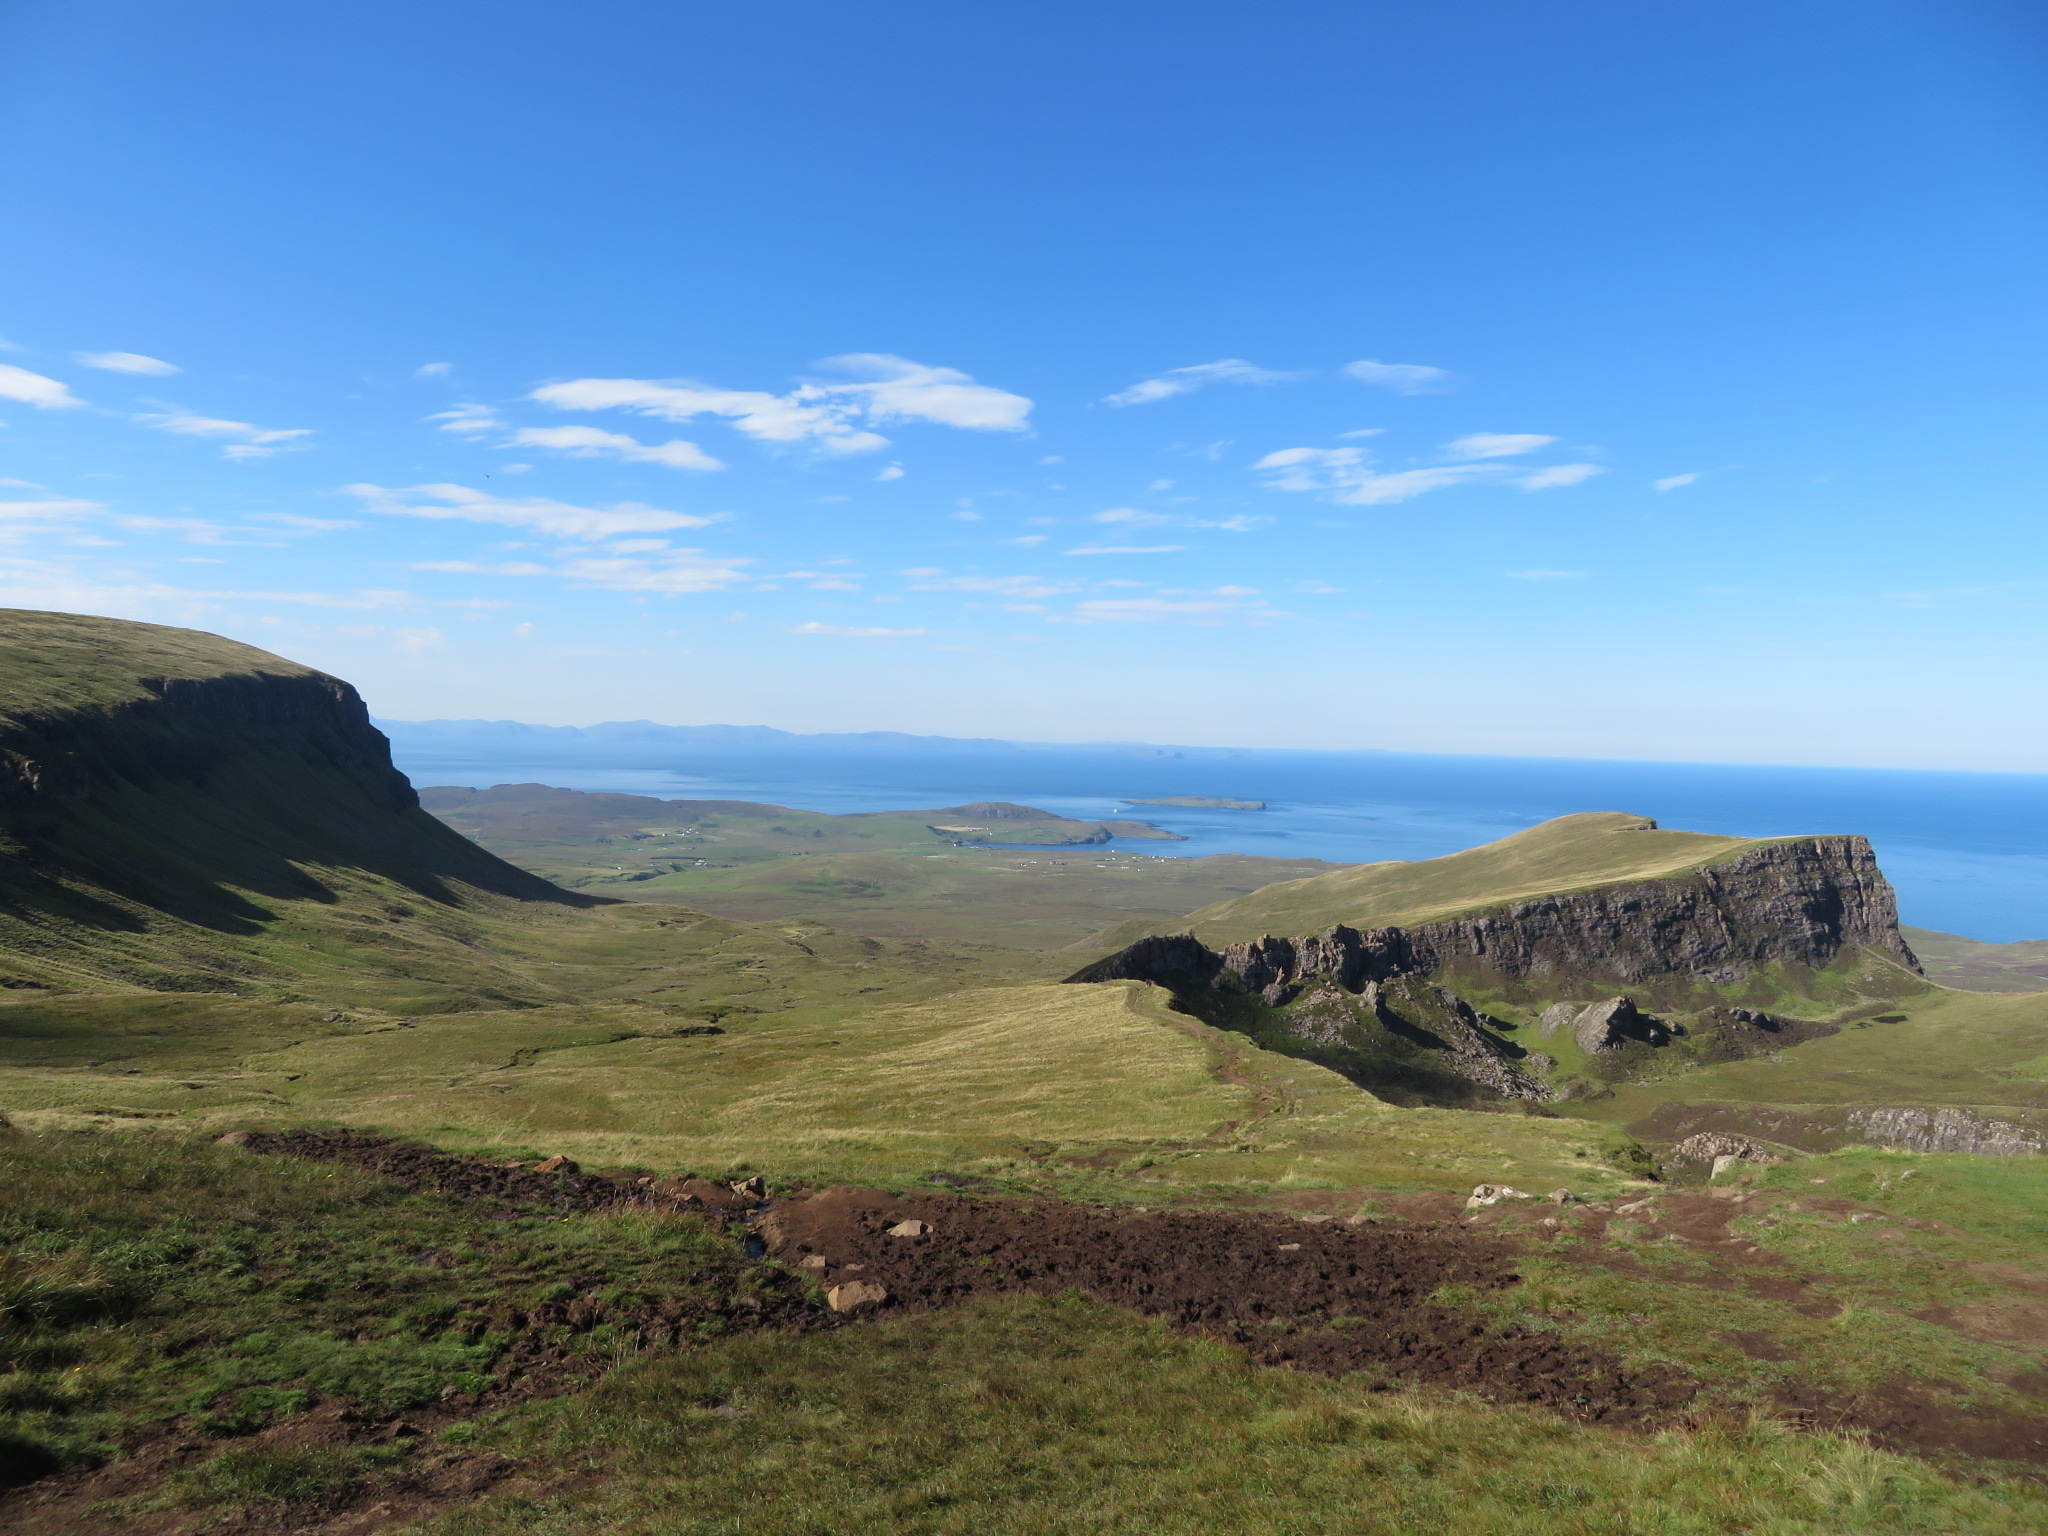 United Kingdom Scotland Isles Skye, Rubha Hunish, North to Rubha Hunish from Quiraing, Walkopedia